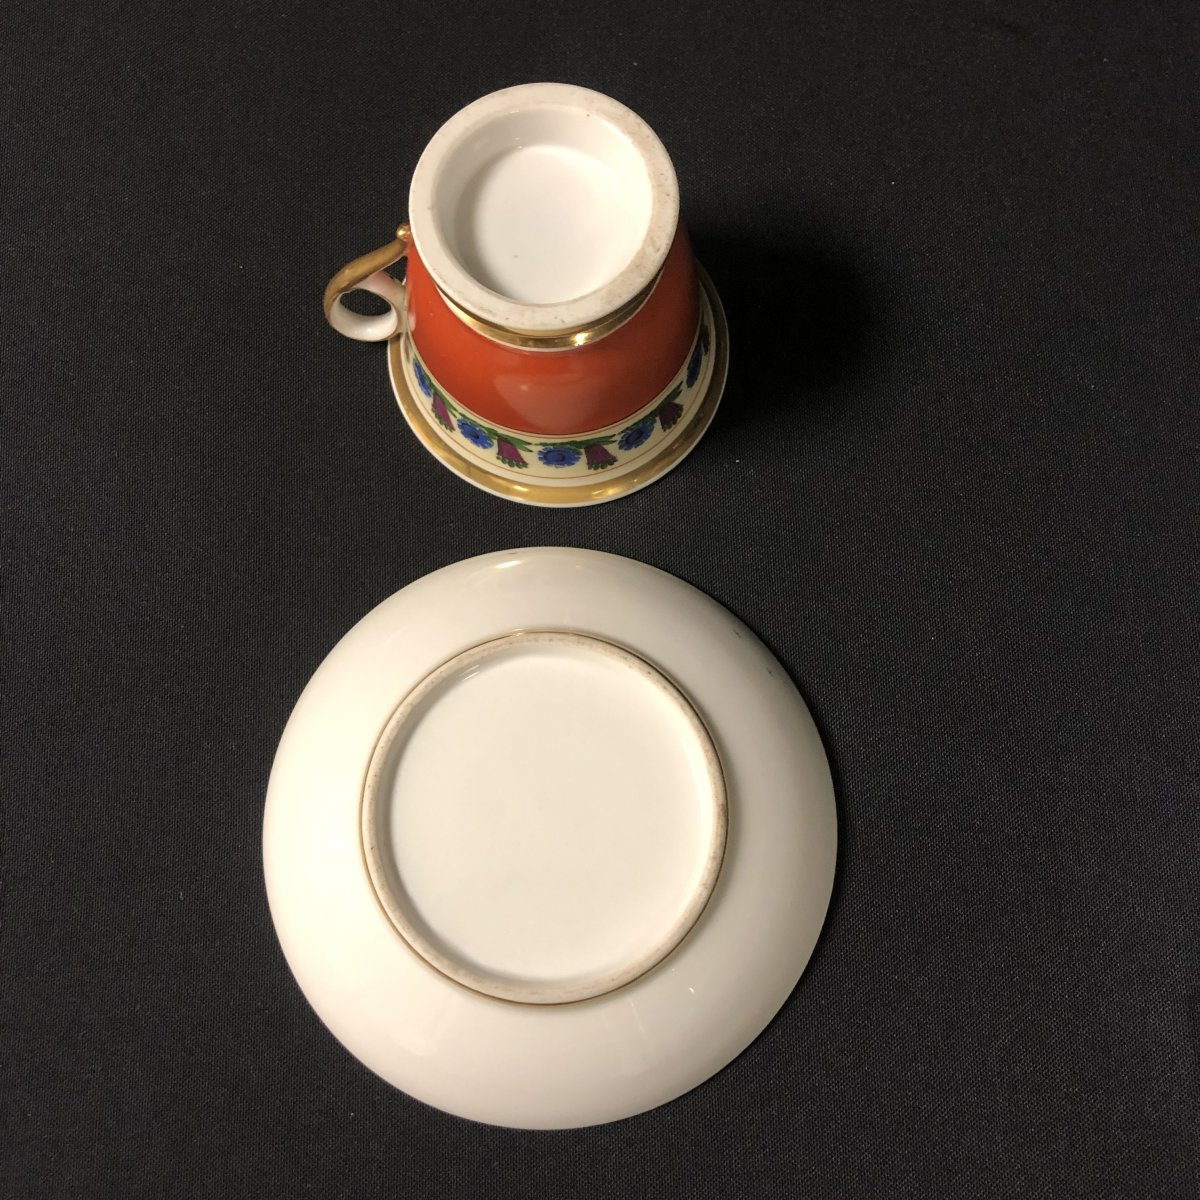 Chocolate Cup And Saucer In Paris Porcelain-photo-3